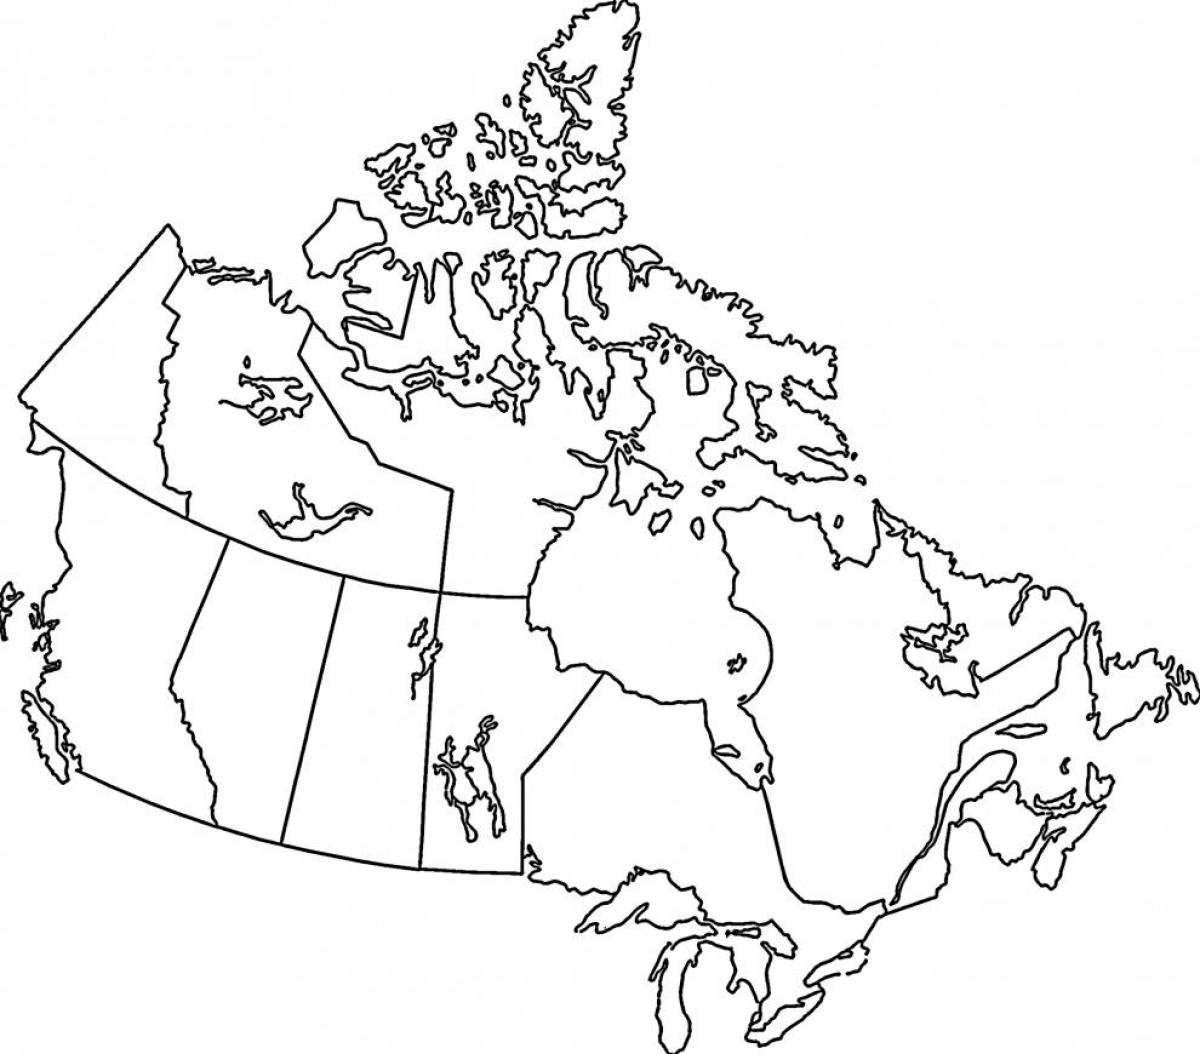 Map Of Canada Colouring Page.Map Of Canada Colouring Page Map Of Canada To Colour Northern